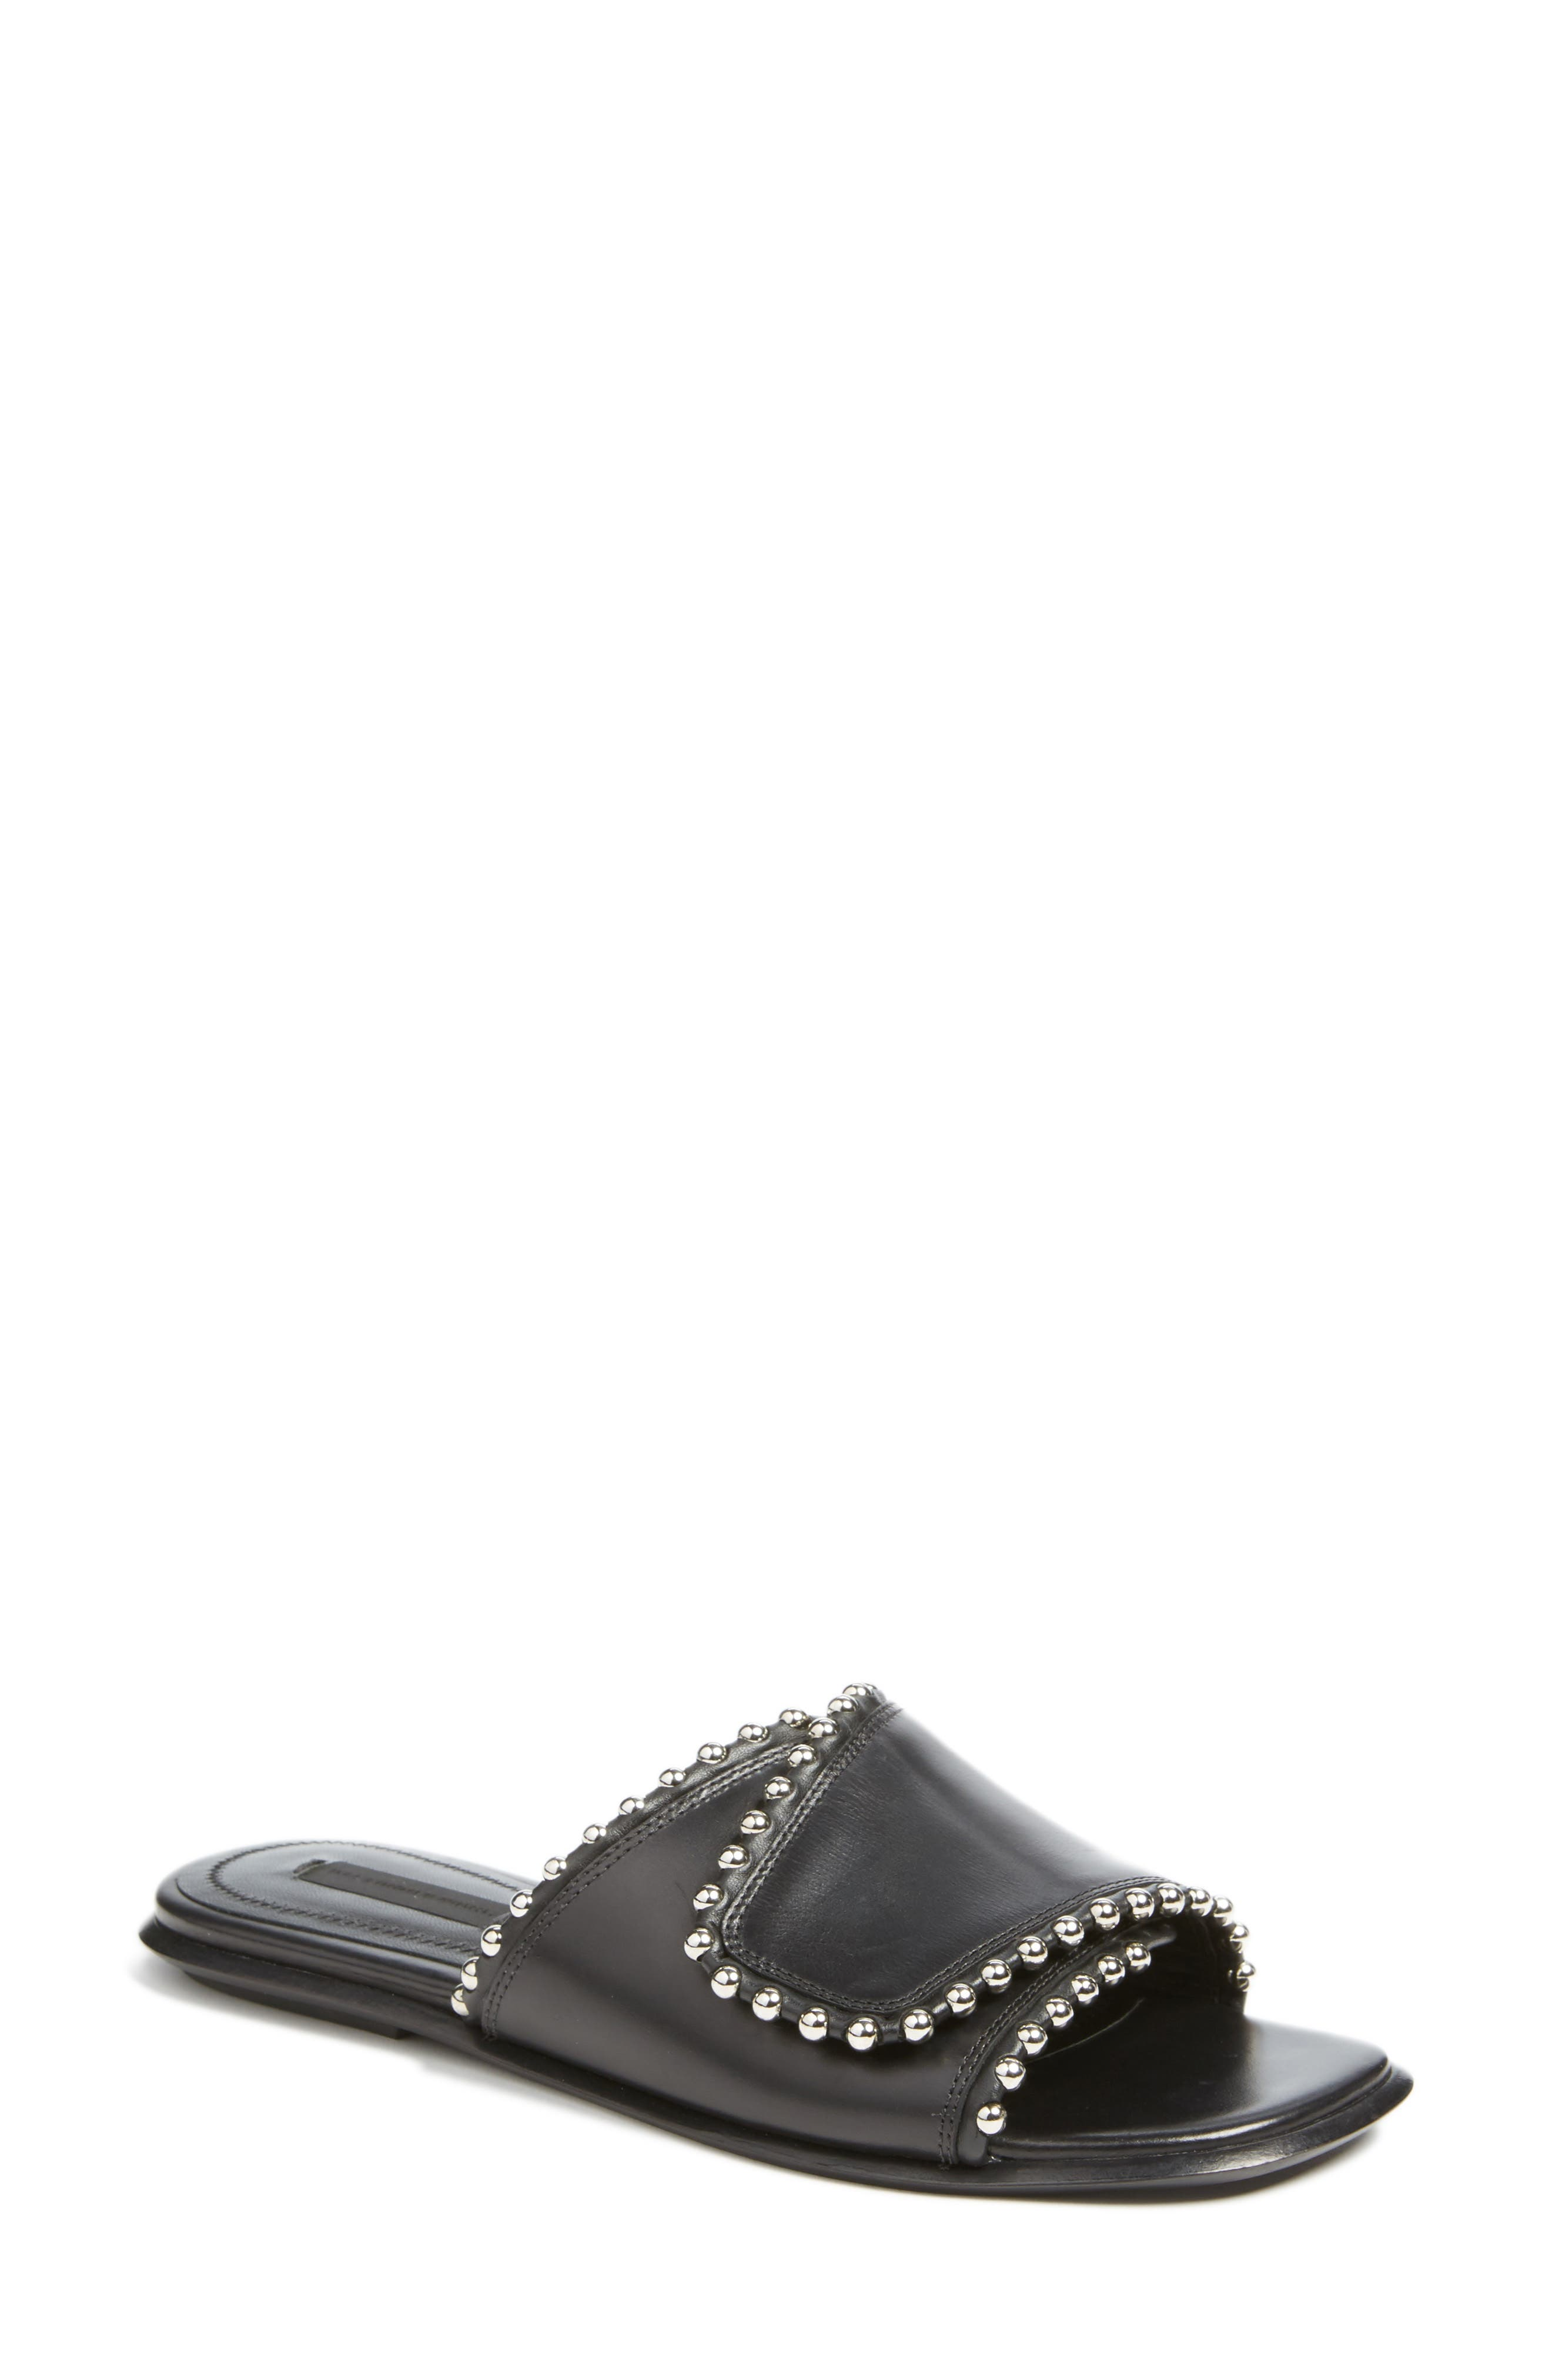 ALEXANDER WANG, Leidy Slide Sandal, Main thumbnail 1, color, 001